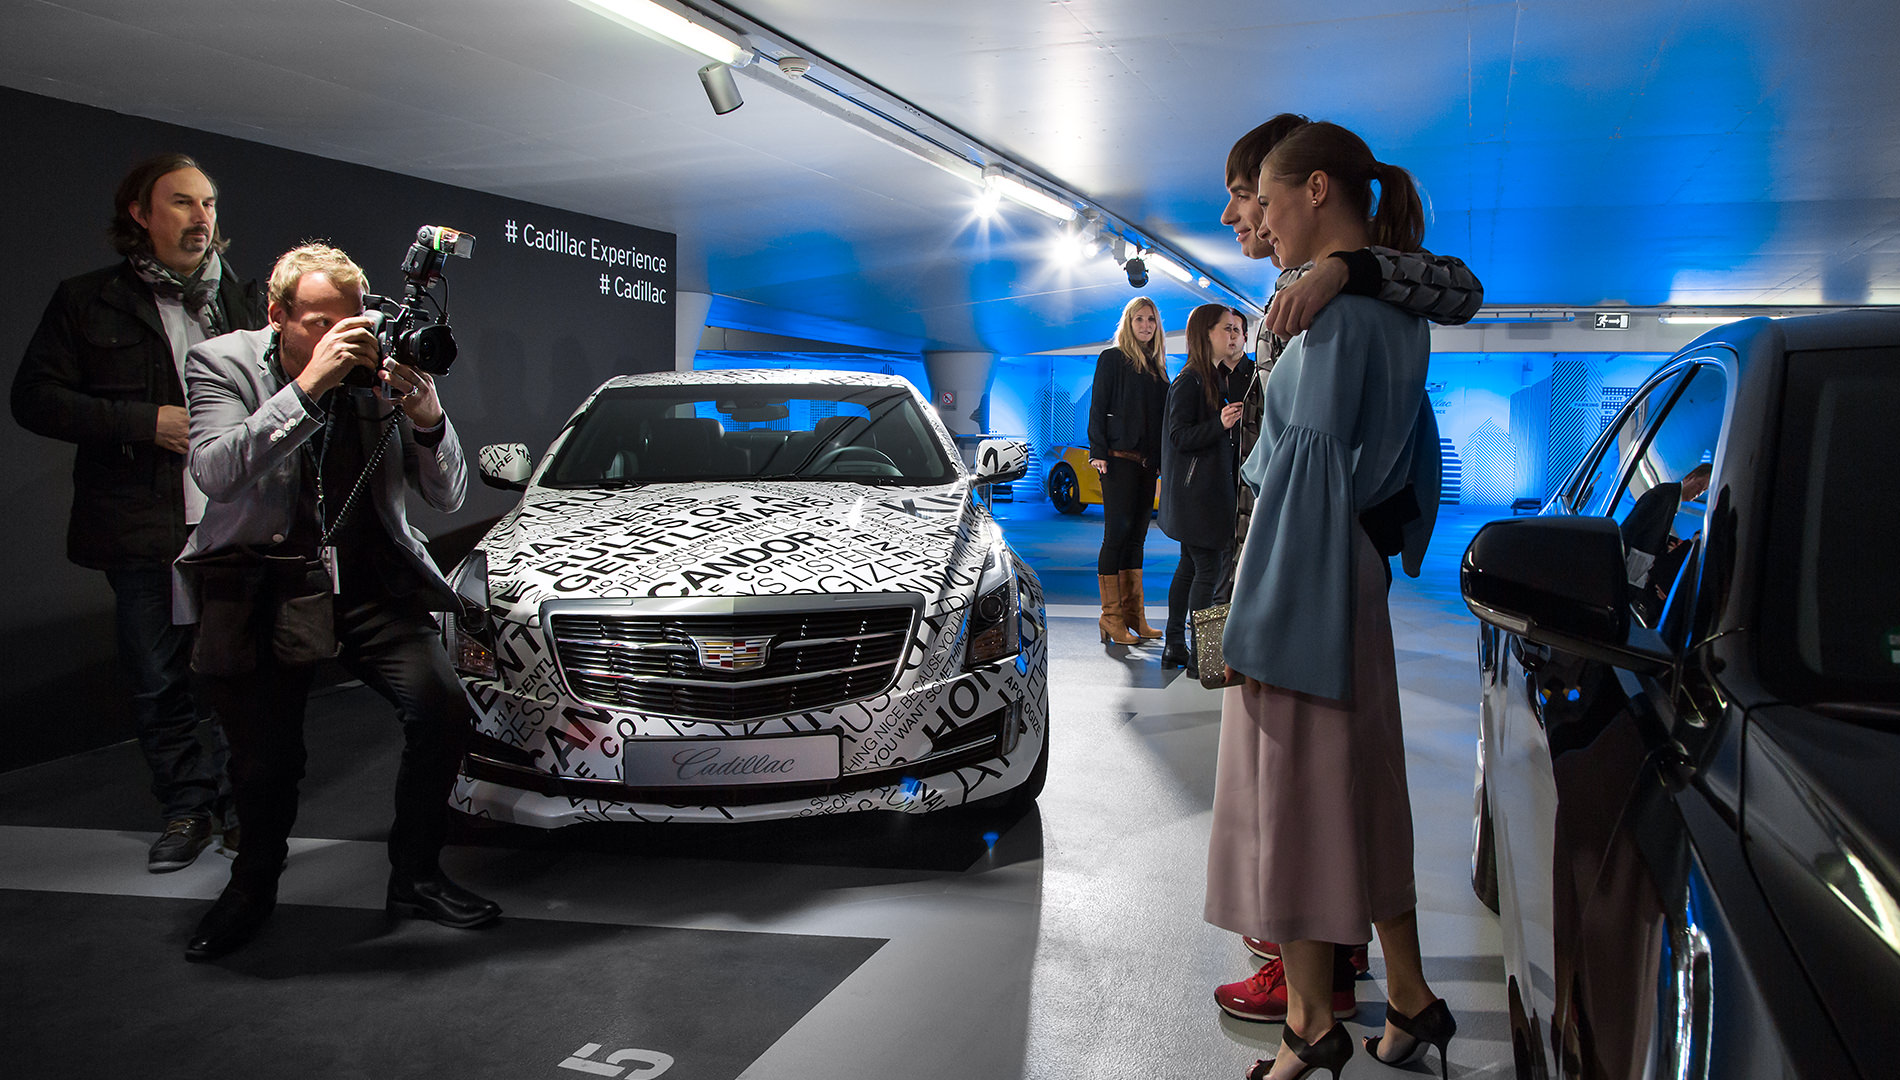 Messe Design Live Kommunikation Berlin Cadillac Experience Autos Gäste Fotograf Going Places EventLabs